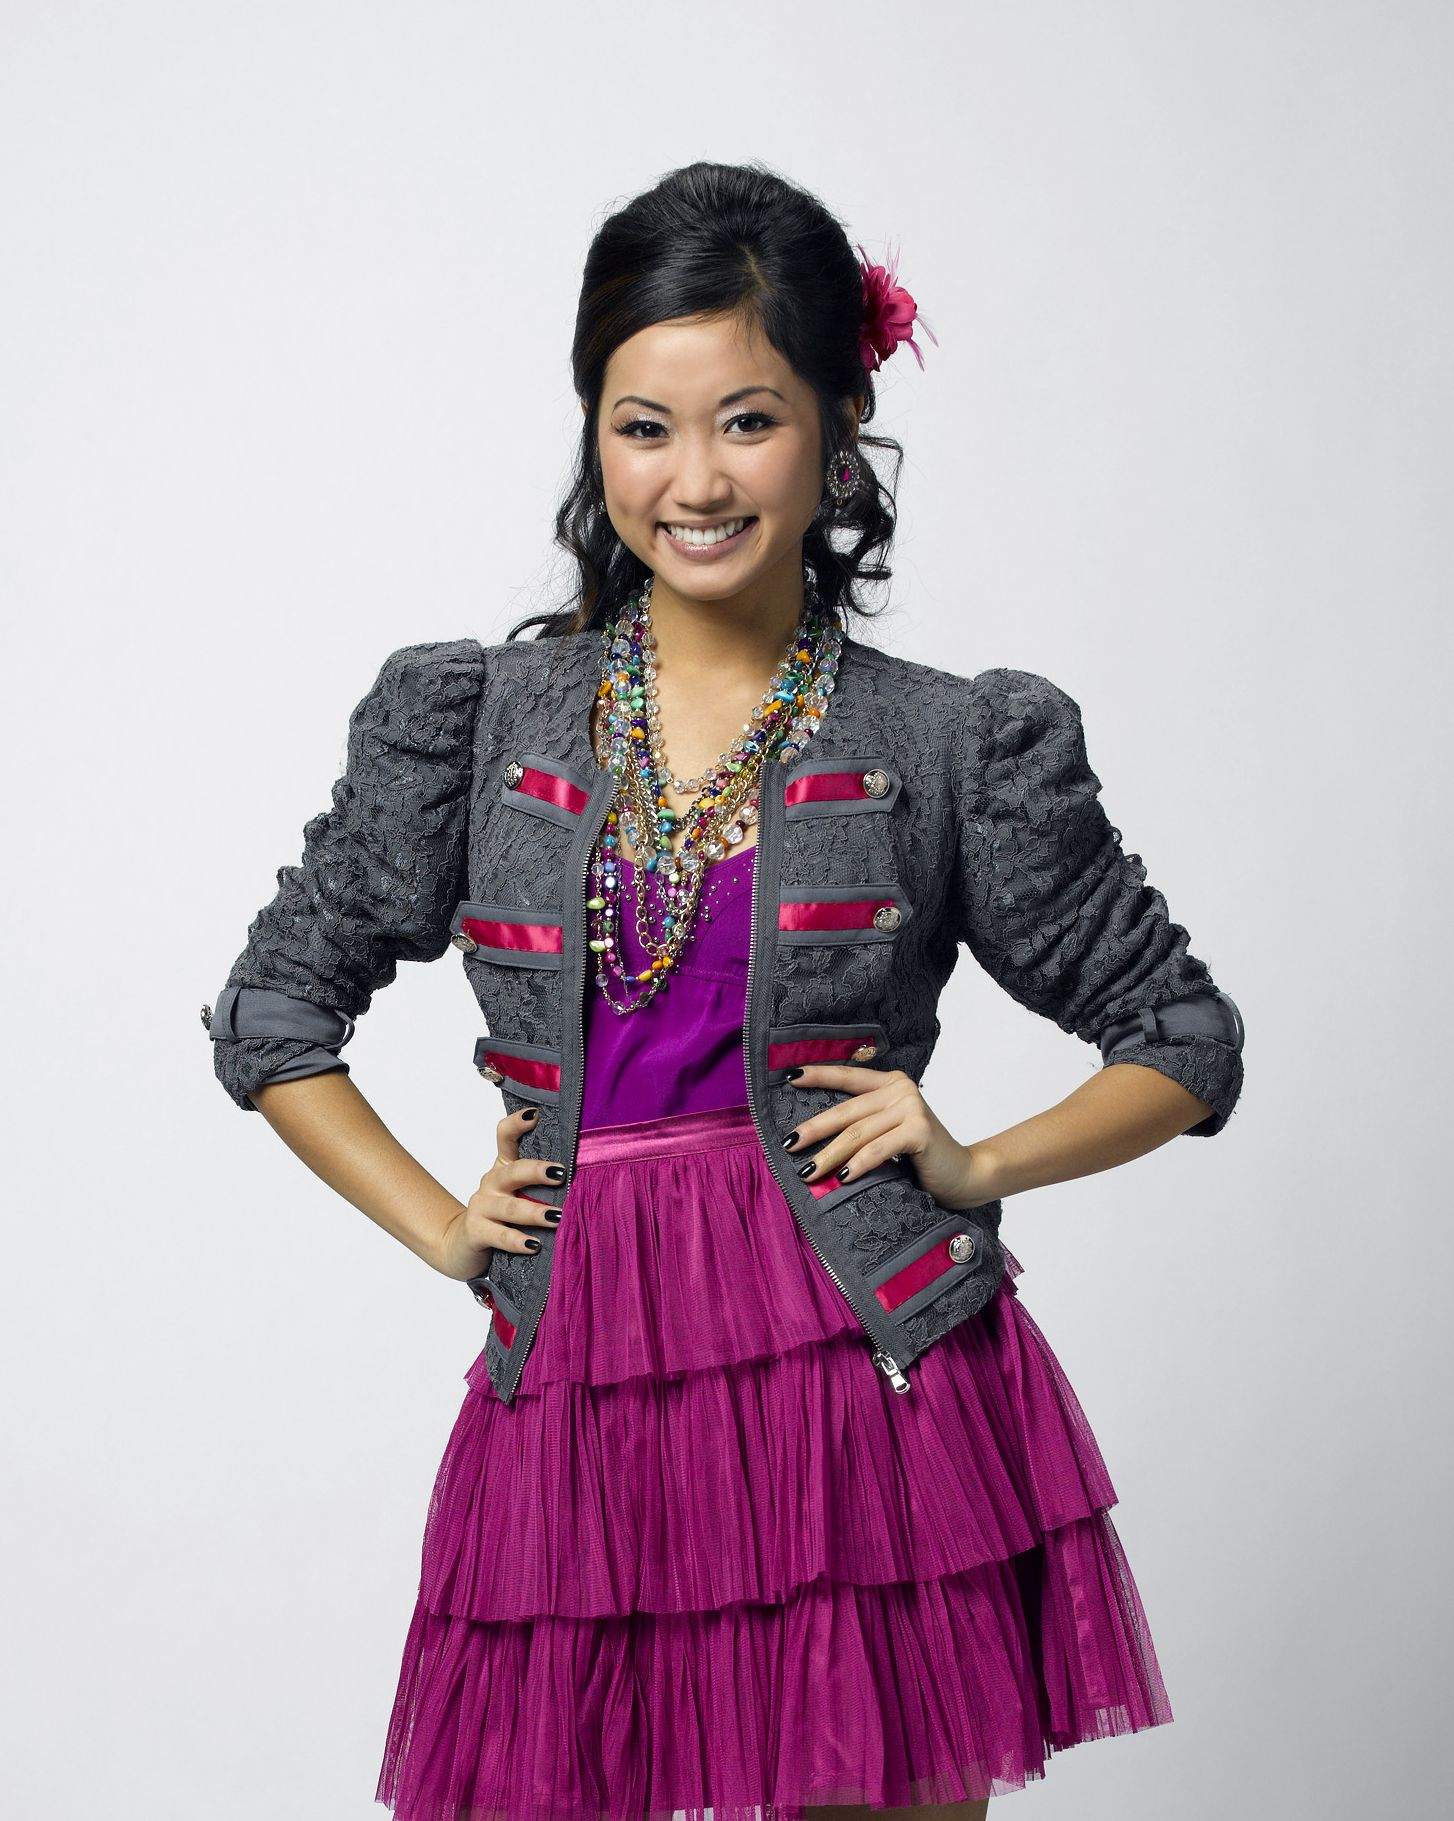 disney channel suite life of zack and cody london tipton brenda song